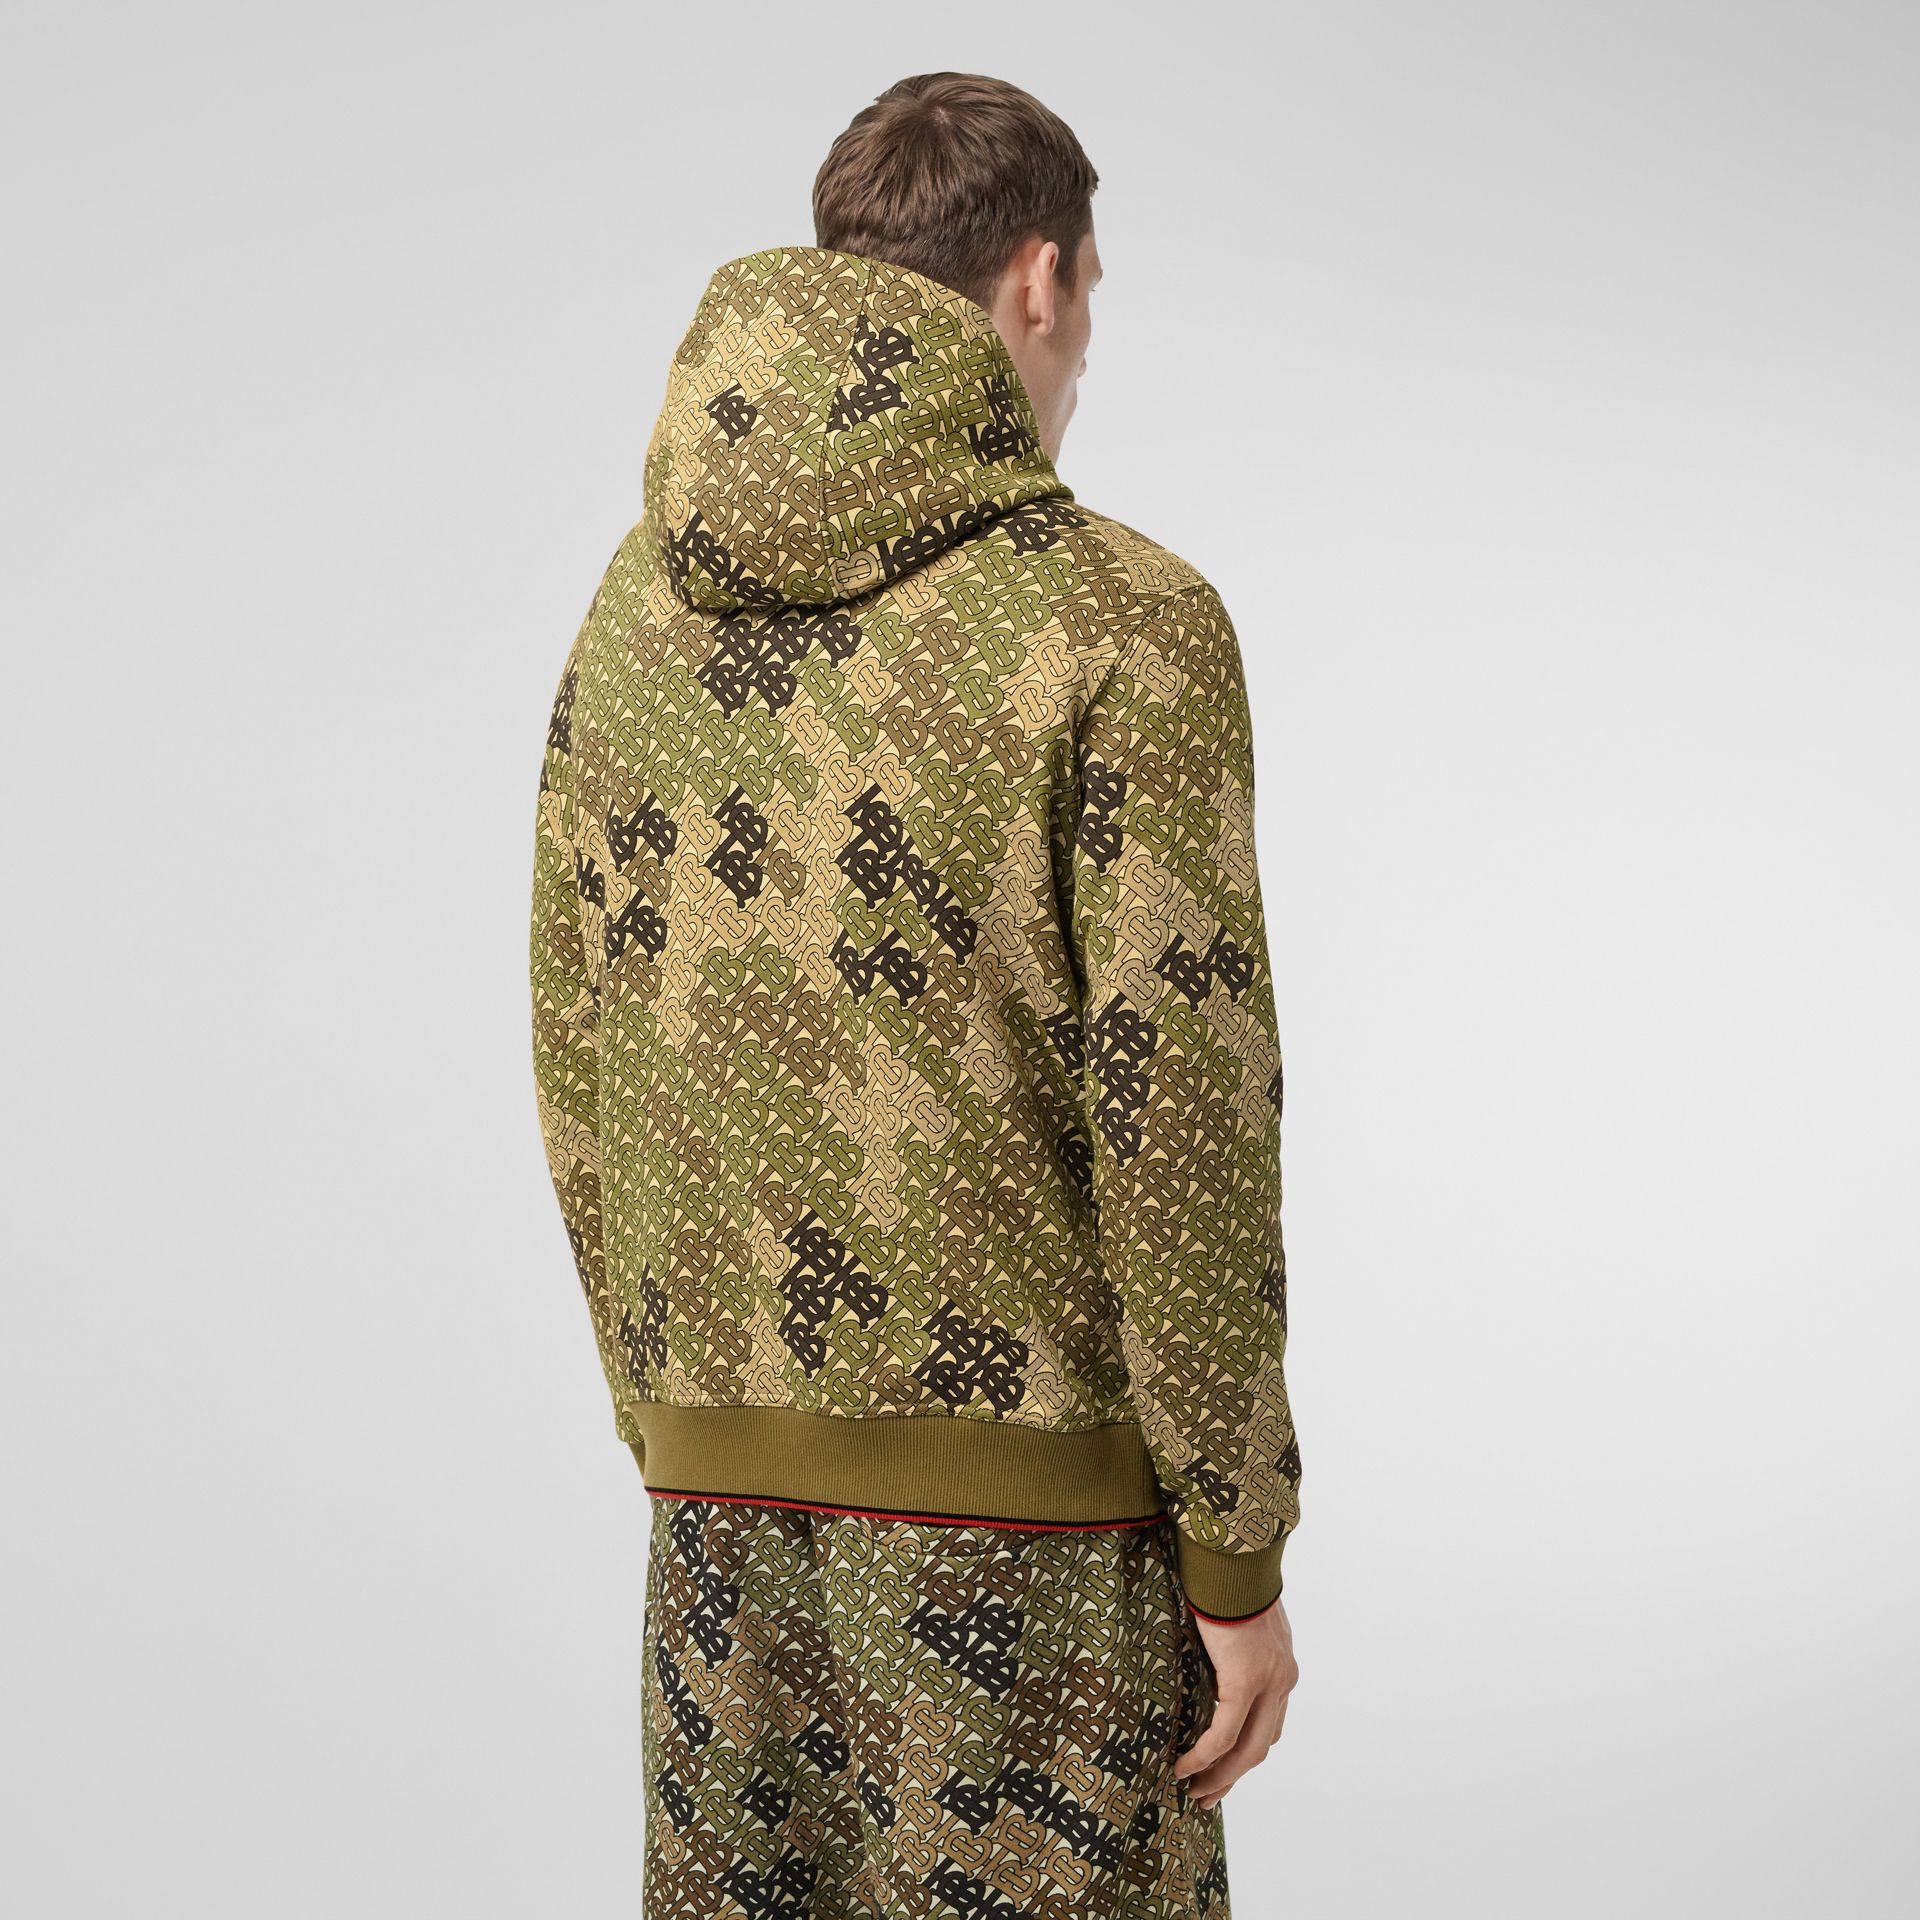 Sweat-shirt à capuche en coton Monogram (Vert Kaki) - Homme | Burberry Canada - photo de la galerie 2